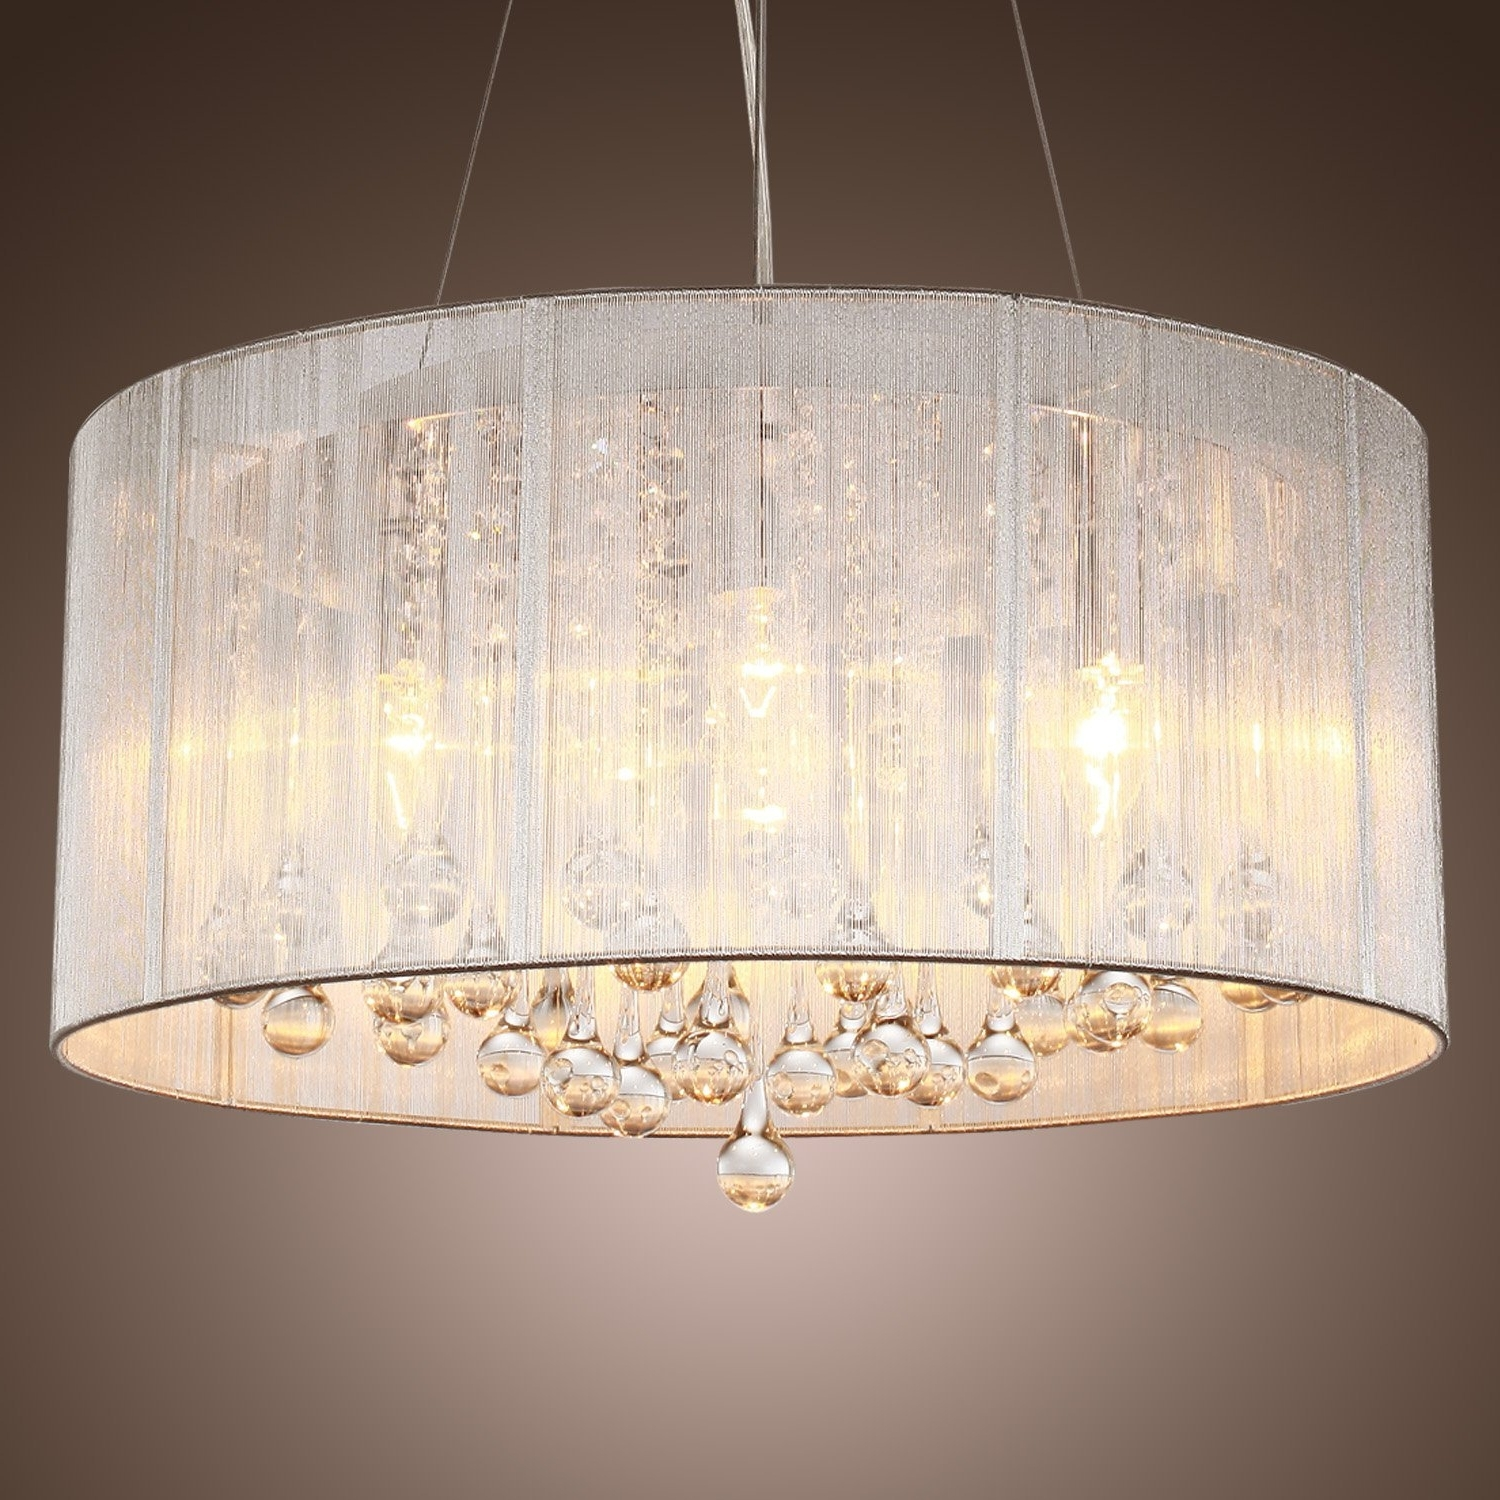 4 Light Crystal Chandeliers Intended For Best And Newest Lightinthebox Modern Silver Crystal Pendant Light In Cylinder Shade (Gallery 6 of 15)